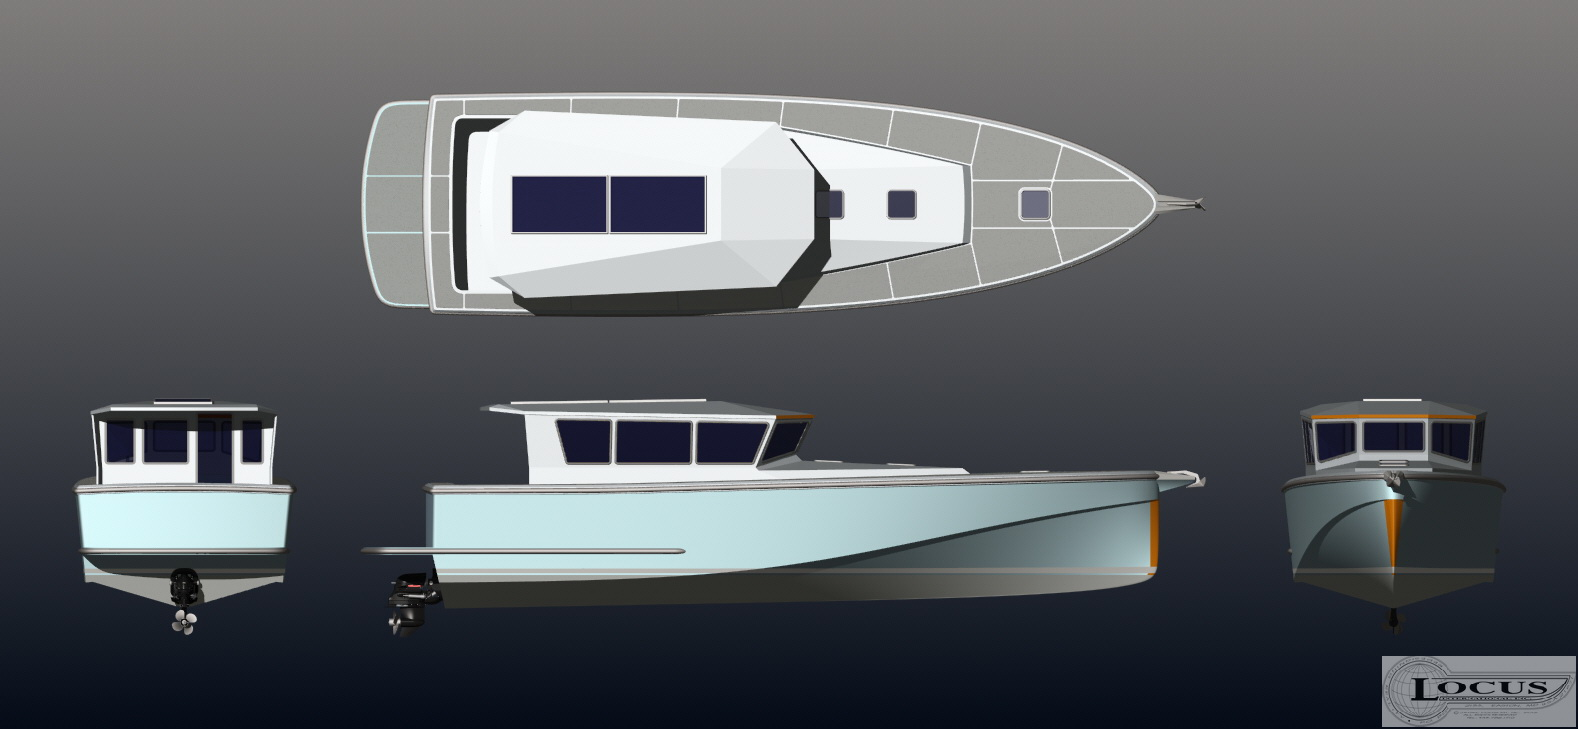 The drawings put words into perspective. These were the four initial dimensional drawings. We have made changes since and there will be more fine-tuning, but the basic concept is what you see here. Note the very fine entry and high chine for absolute efficiency at sea and displacement speeds while coastal cruising.